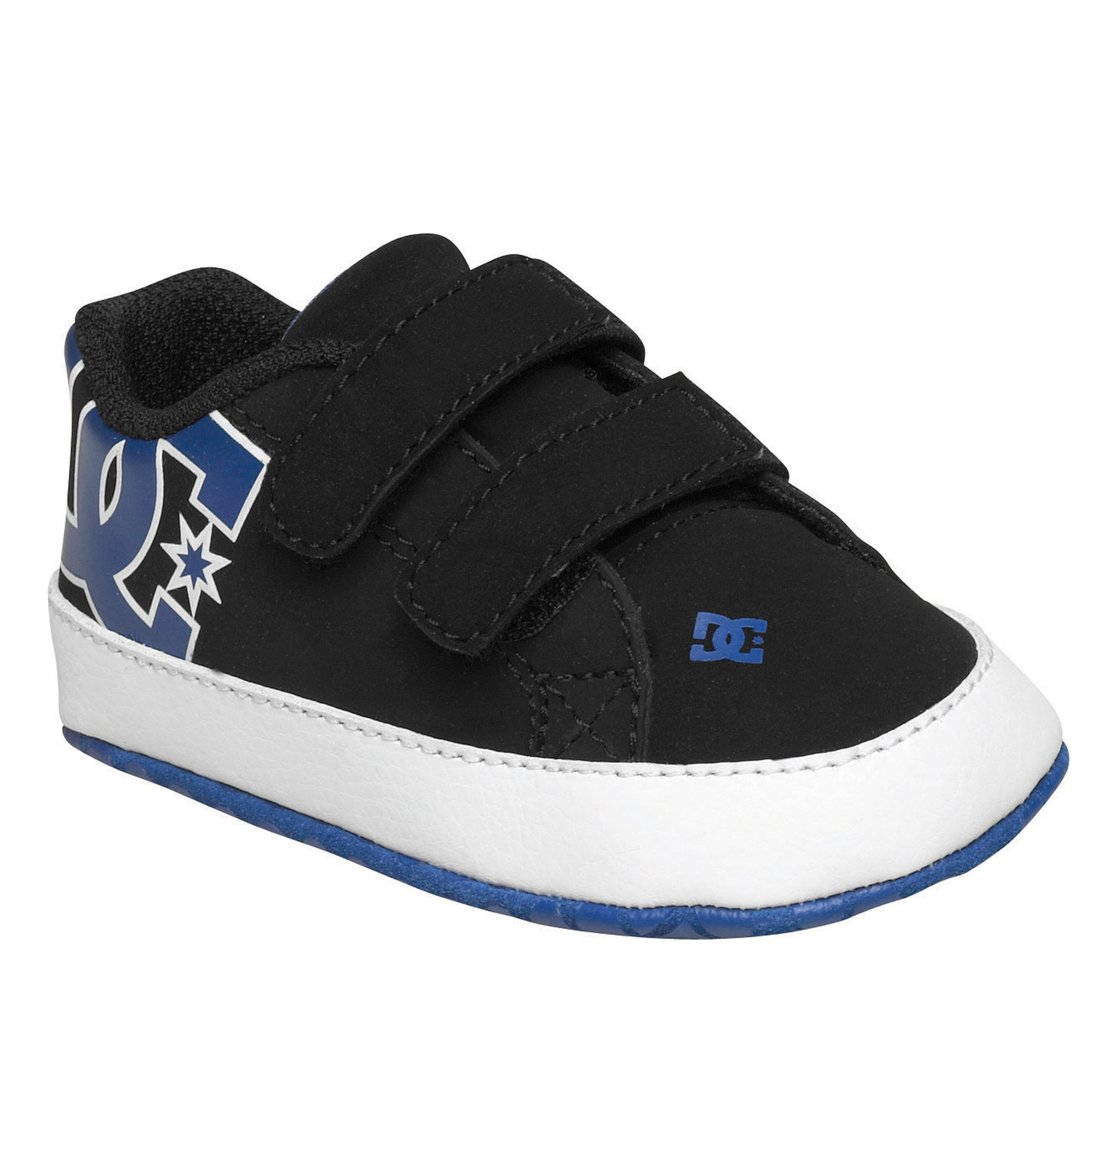 Browse and shop toddler skate clothing at the official online store of DC Shoes, the industry leader since Free shipping every day.